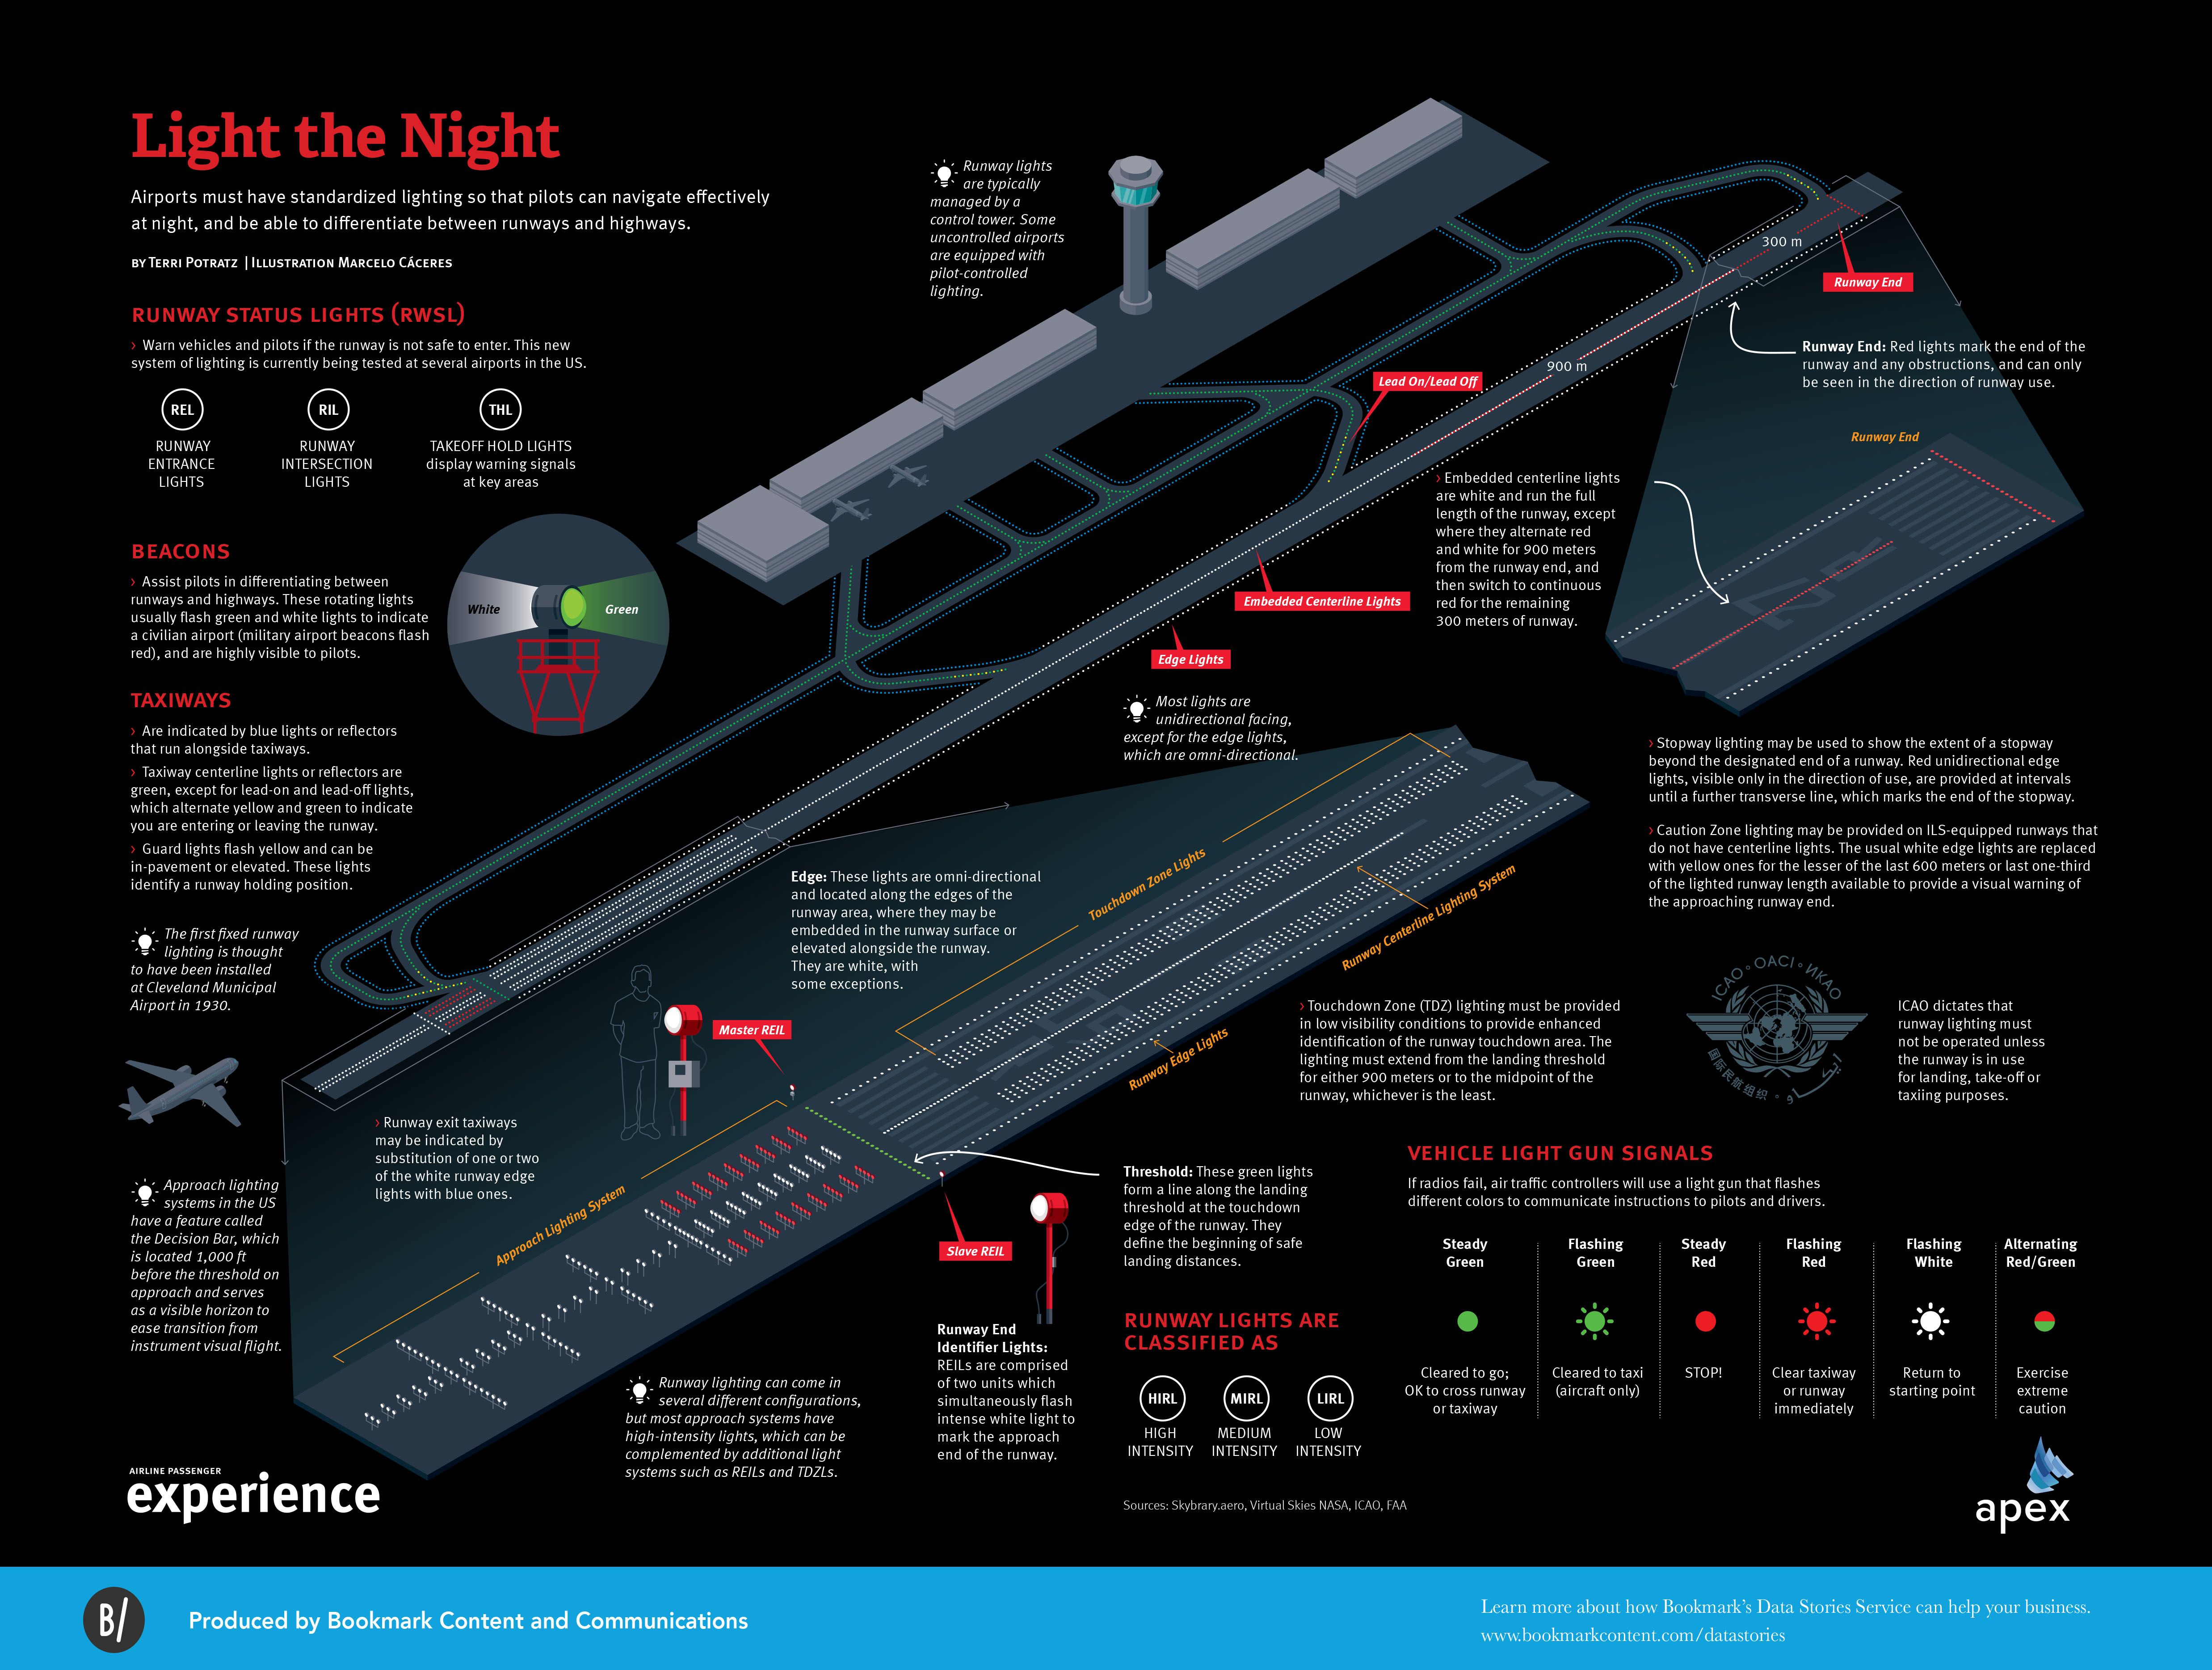 Light the Night, the science behind runway lighting  APEX magazine